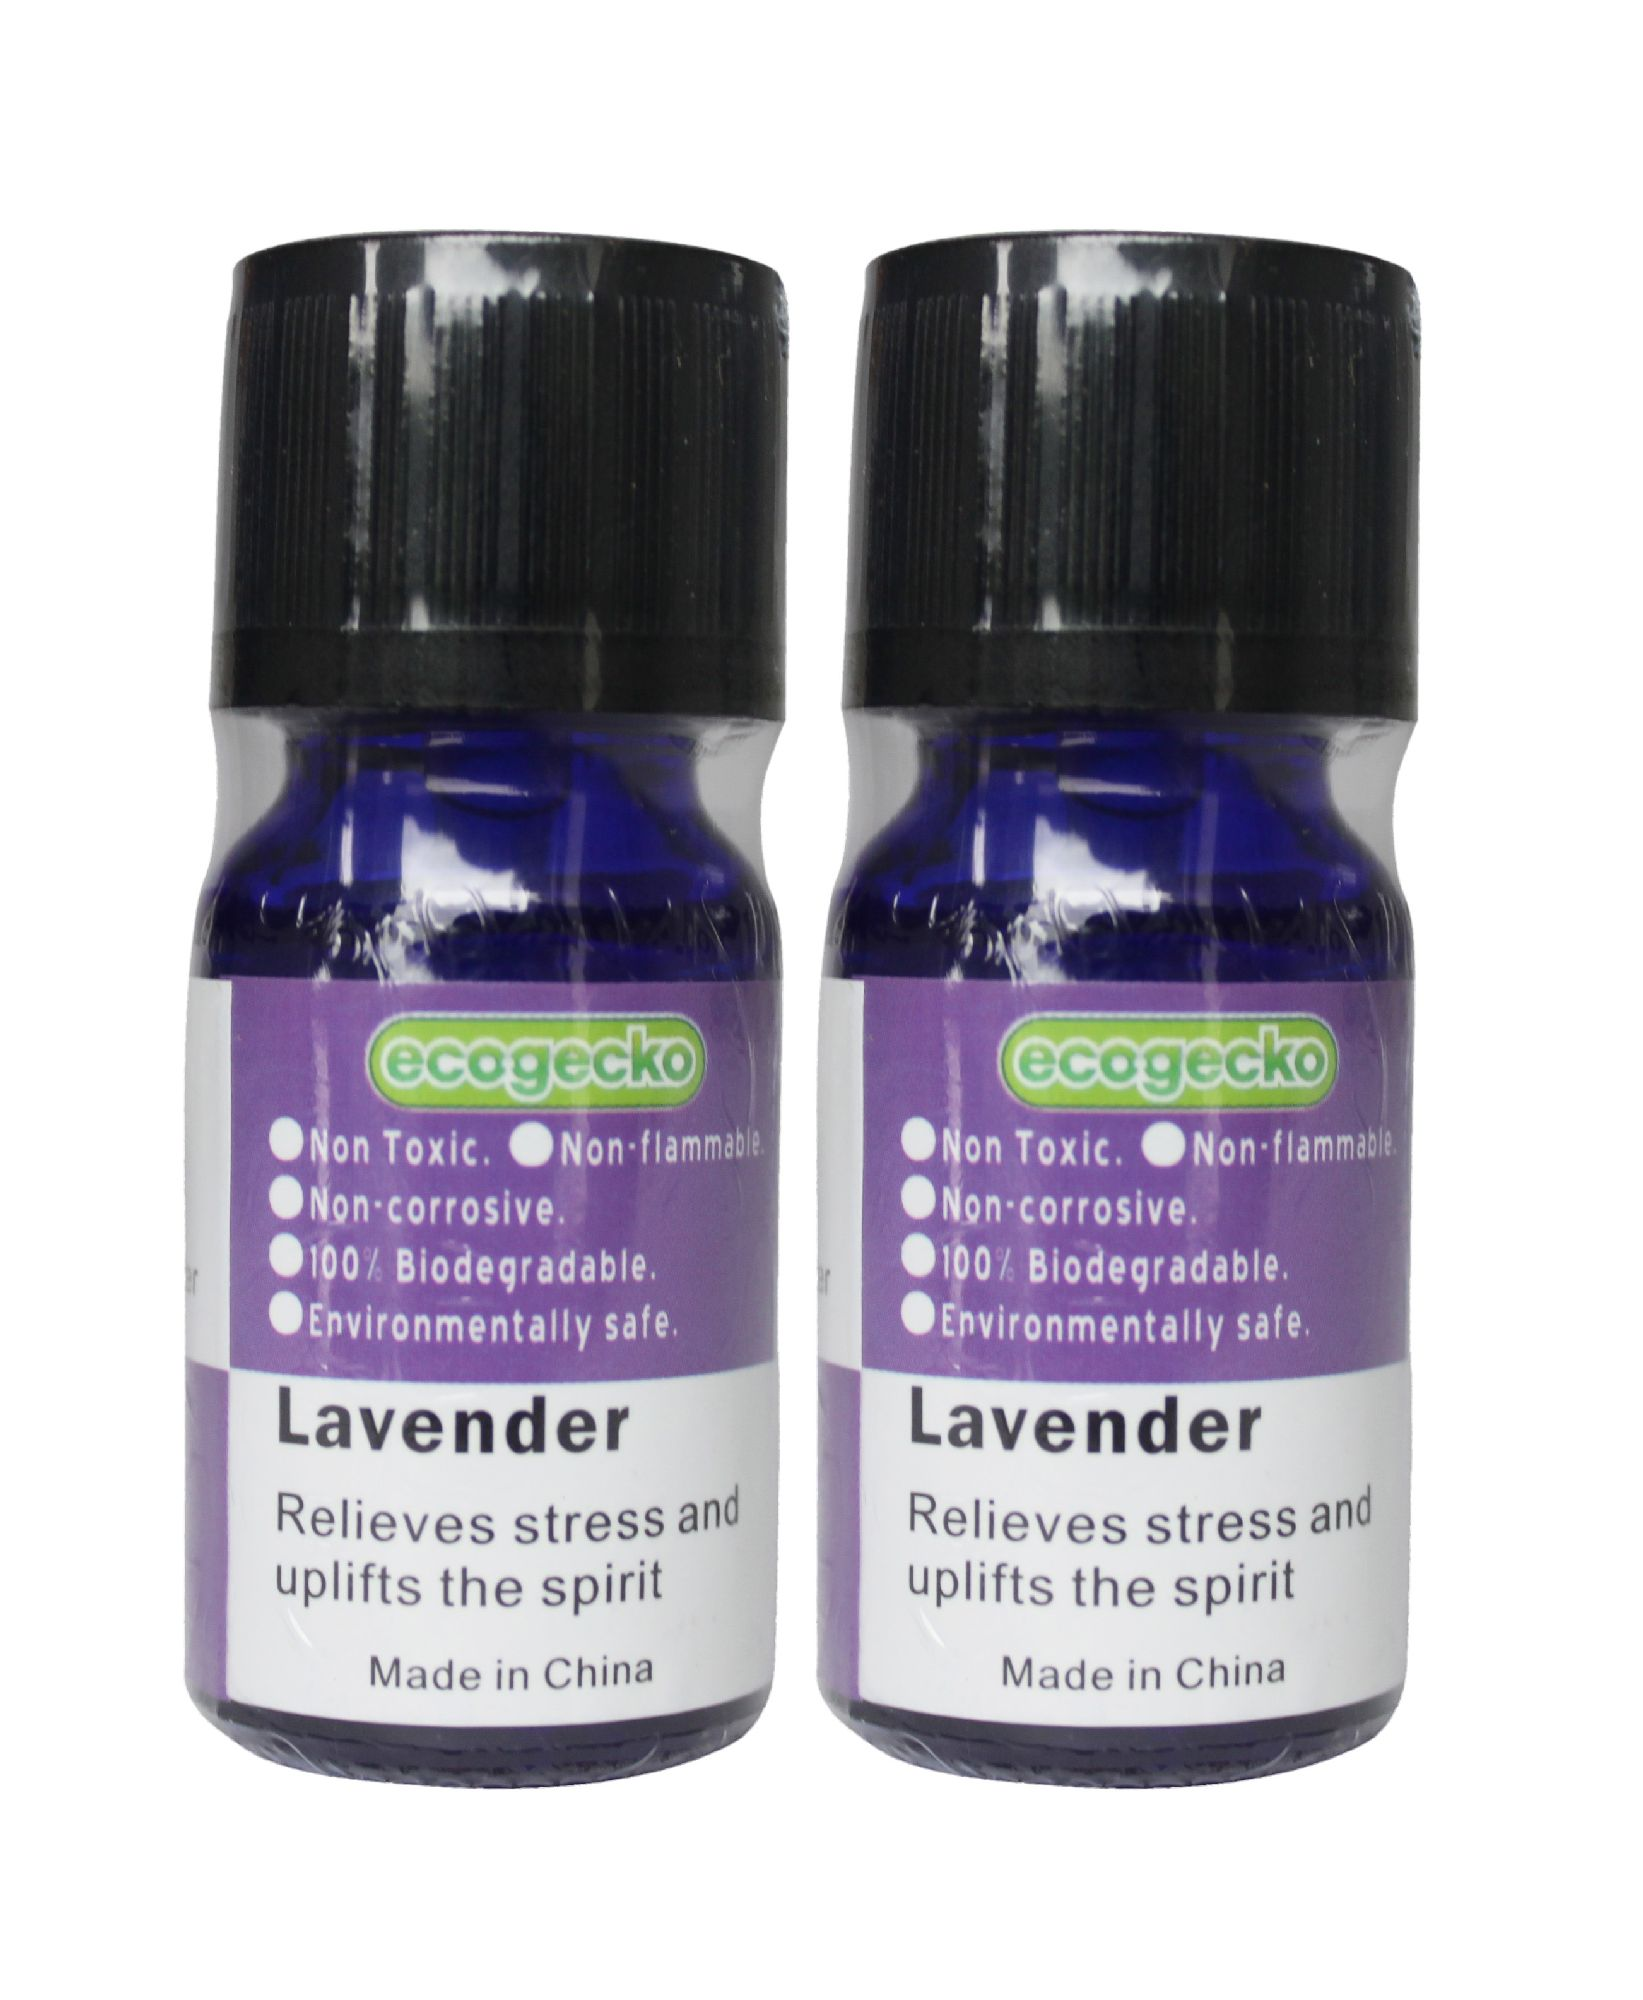 Ecogecko Fragrant Aroma Oil (10 ml) for Water Based Air Revitalizer Air Freshener Oil Diffuser Aromatherapy - Lavender Scent Oil, 2 Pack